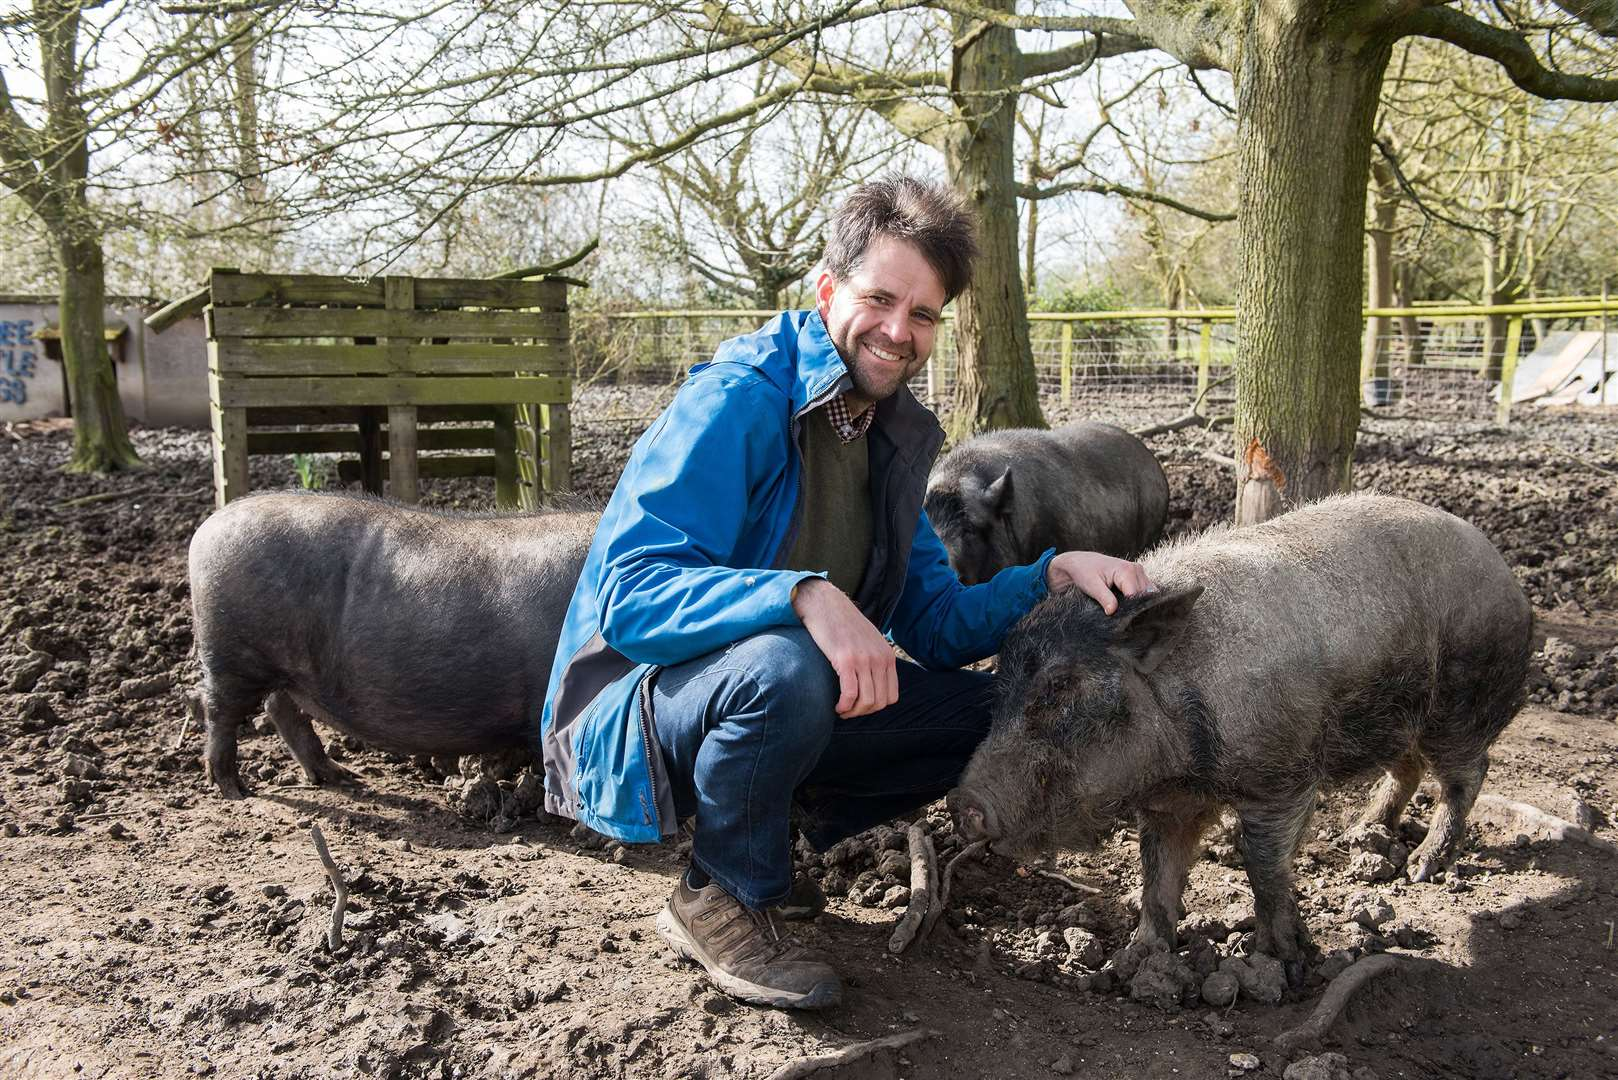 David Woricker, who leases the farm, is hoping the public will get behind it and the animals for which it is home. Picture by Mark Westley.